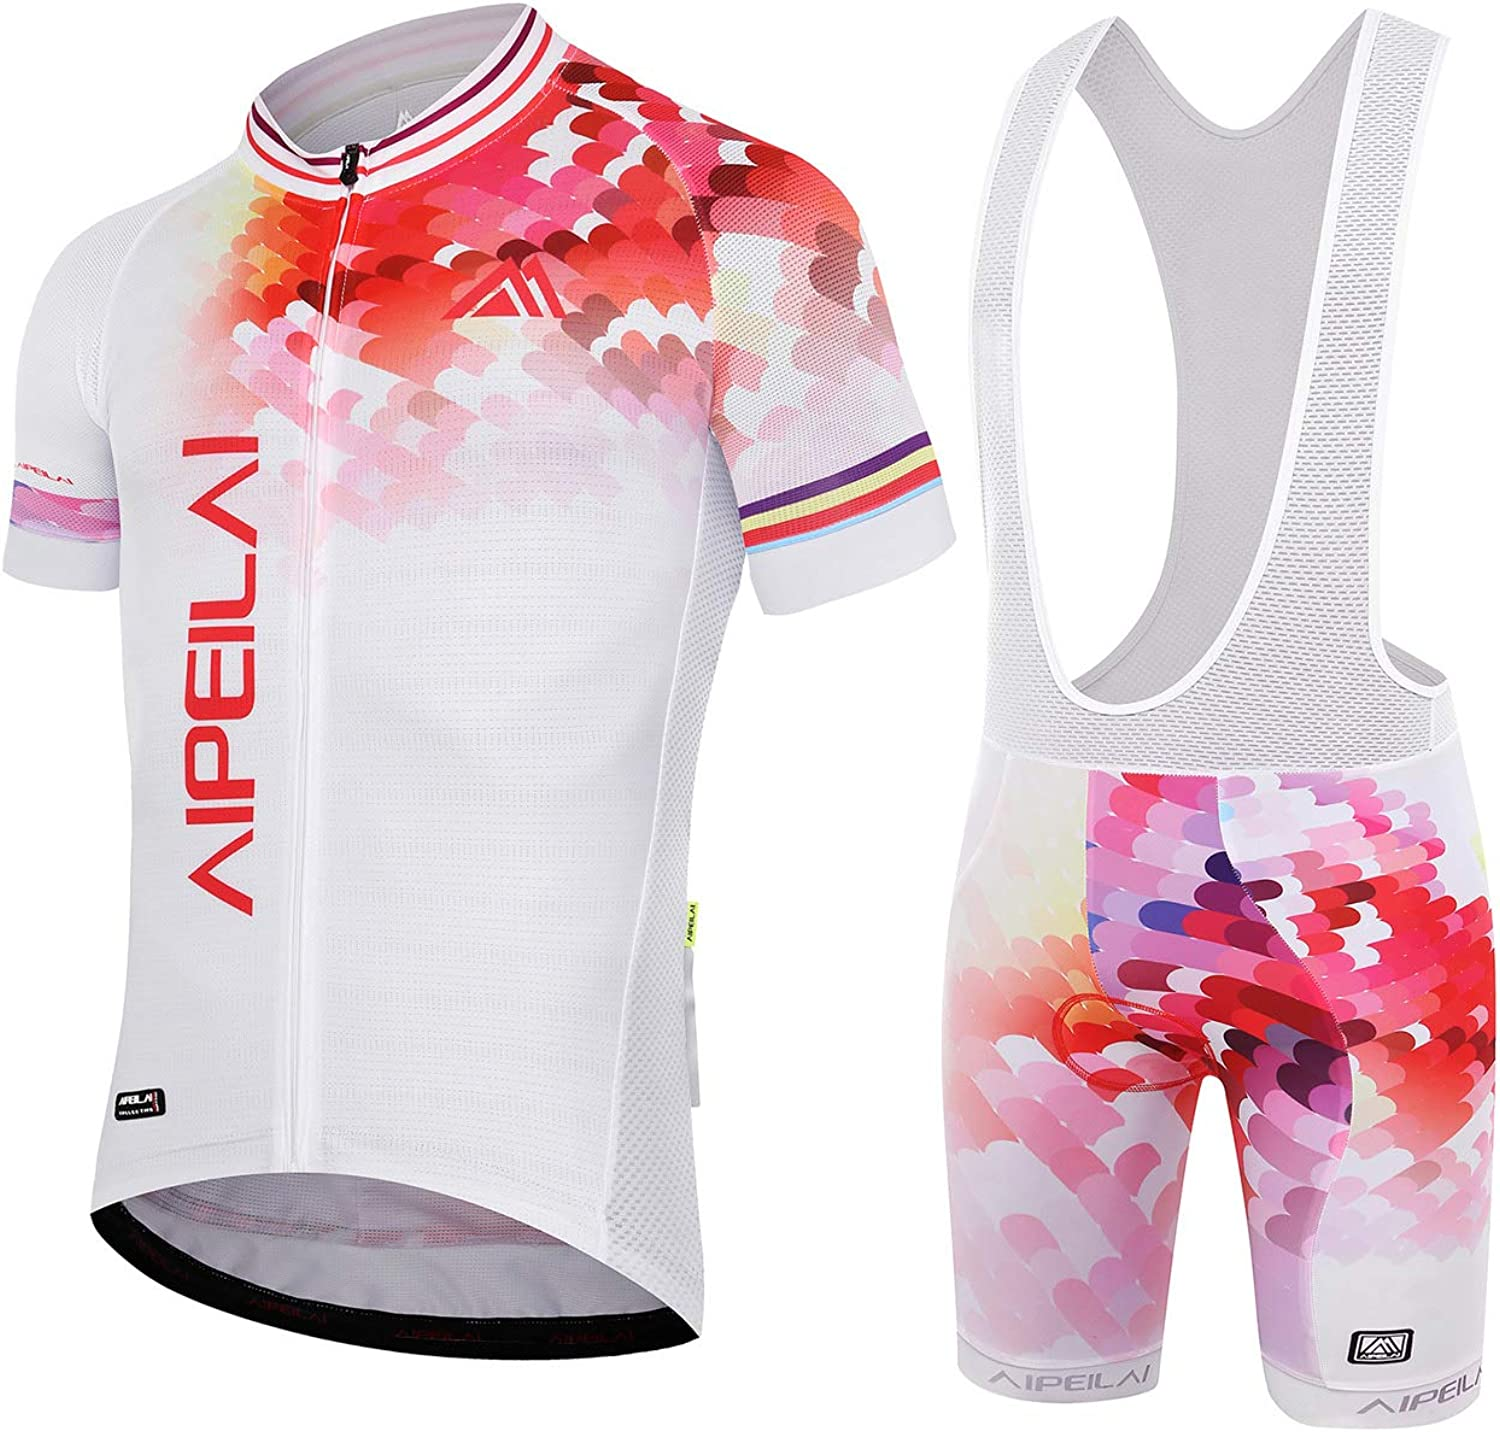 Aipeilai Mens Short Sleeve Cycling Suit Bike Bicycle Jersey and Bib Shorts Set